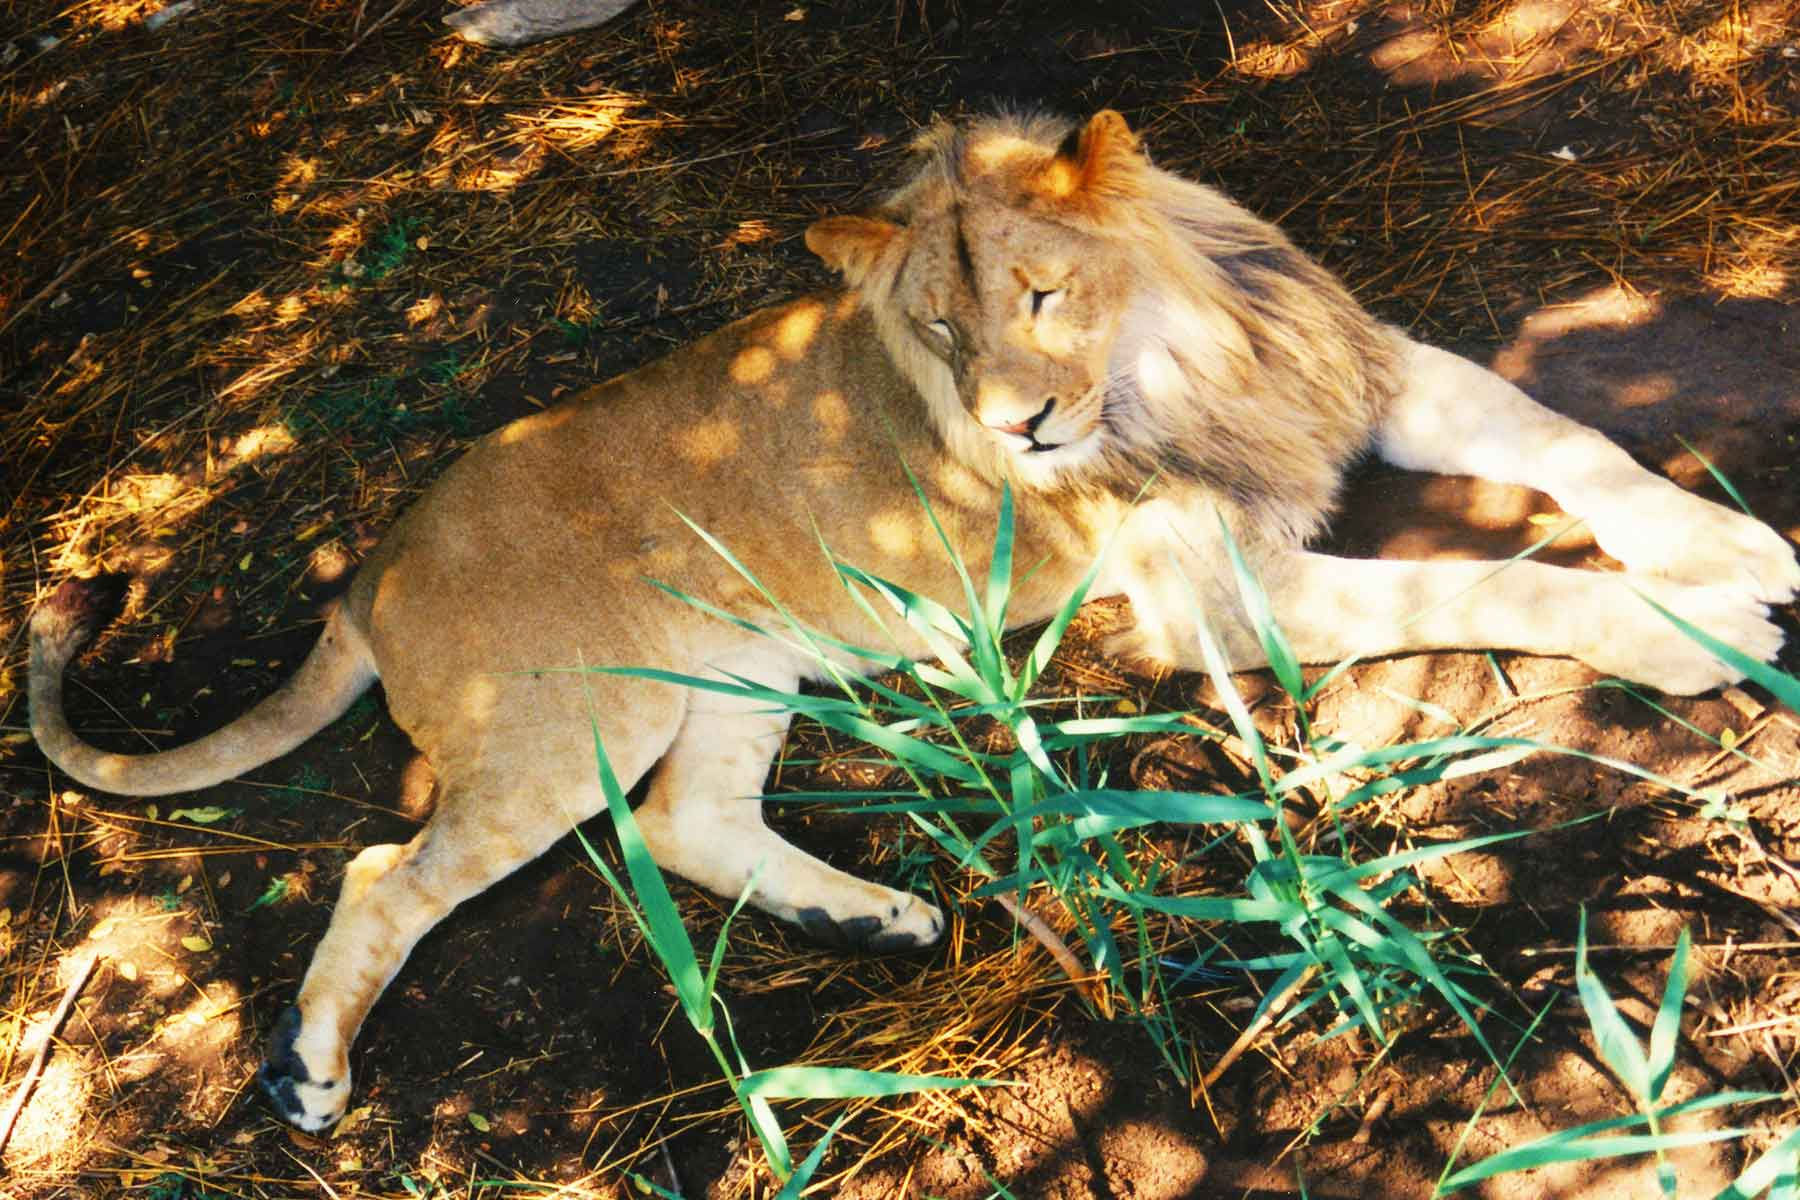 Lion - Steven Andrew Martin - South Africa Safari - Photo Journal - Dr. Steven A. Martin - International Education Online